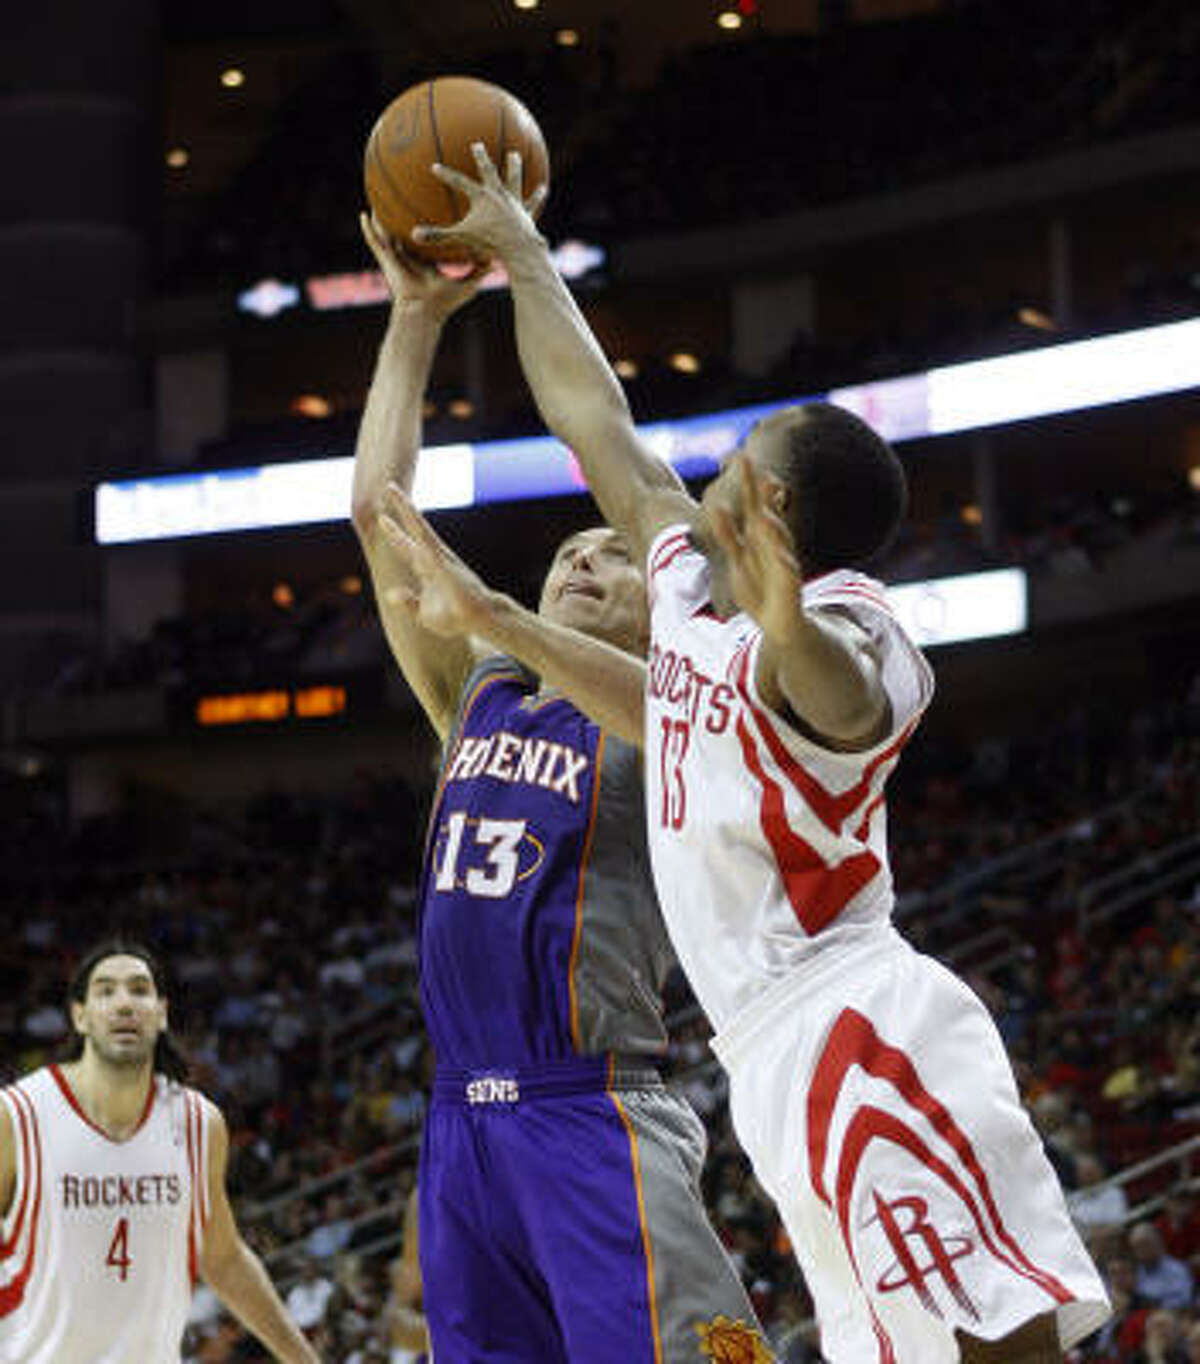 Phoenix Suns guard Steve Nash had 24 points and nine assists in a win over the Rockets on Monday night.